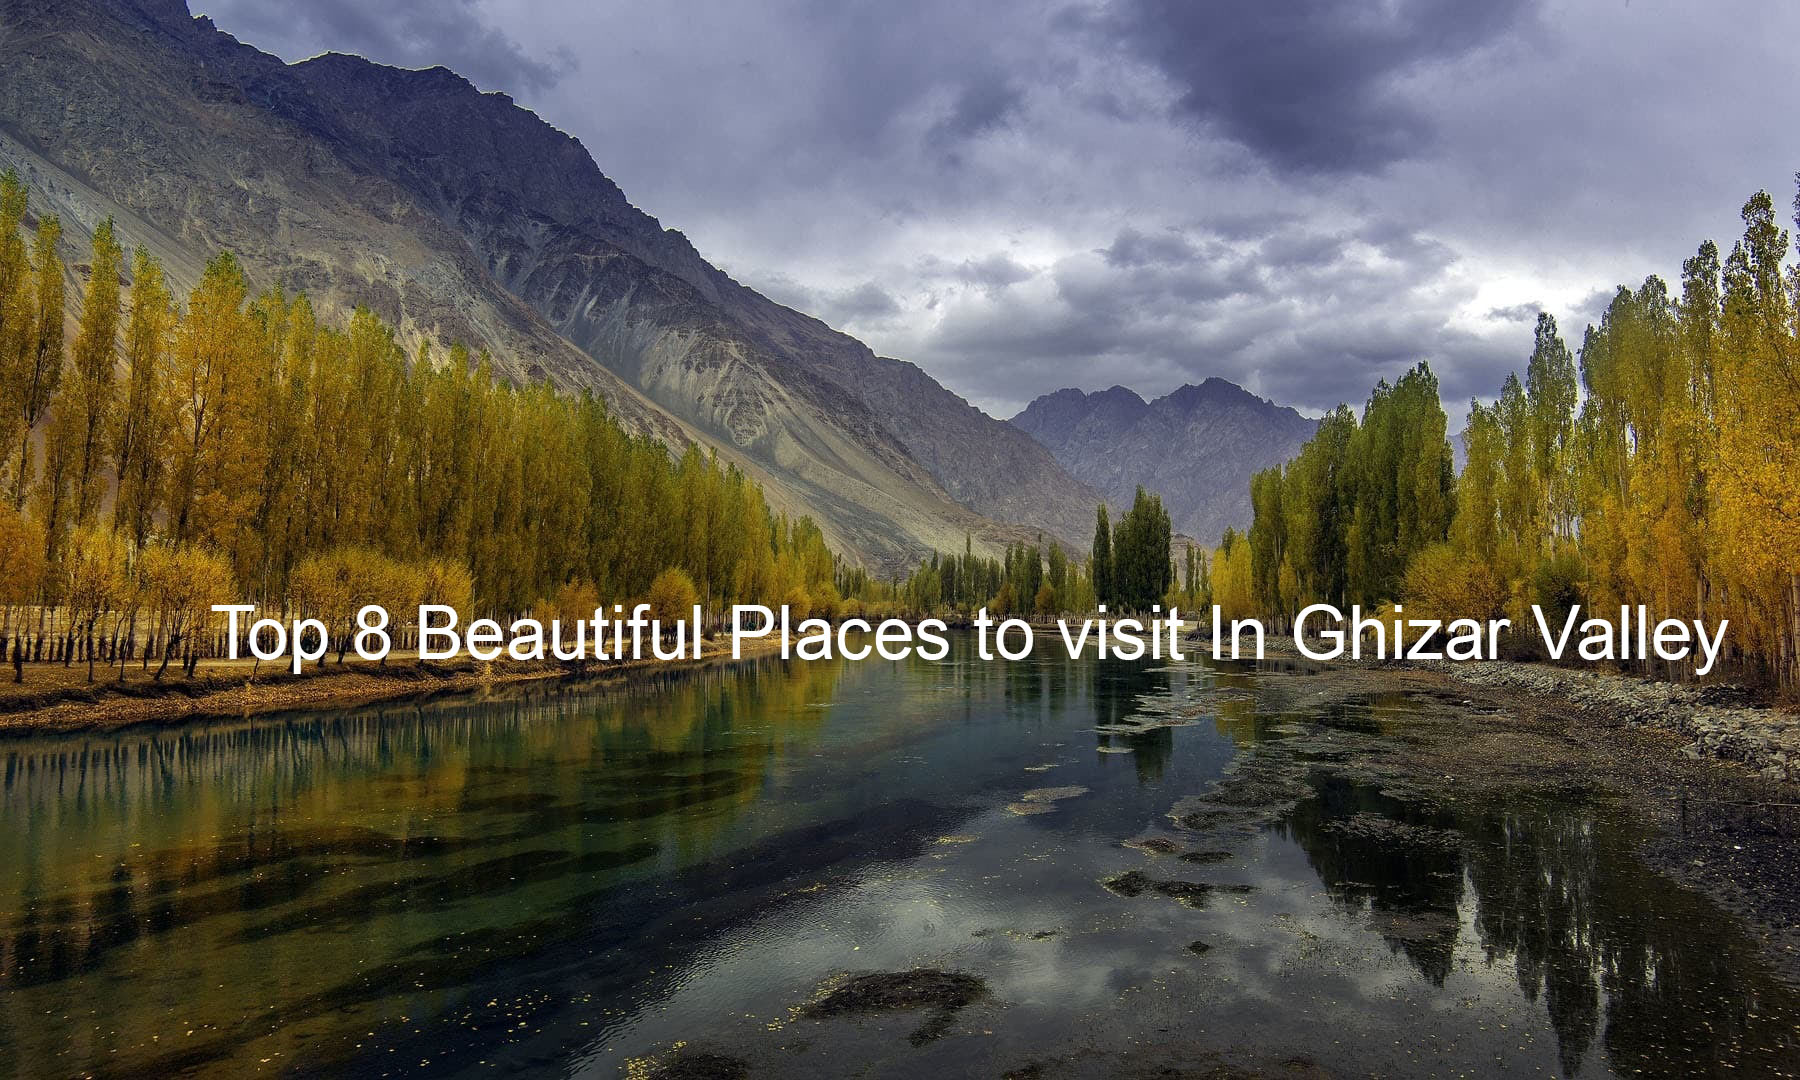 Top 8 Beautiful Places to visit In Ghizar Valley